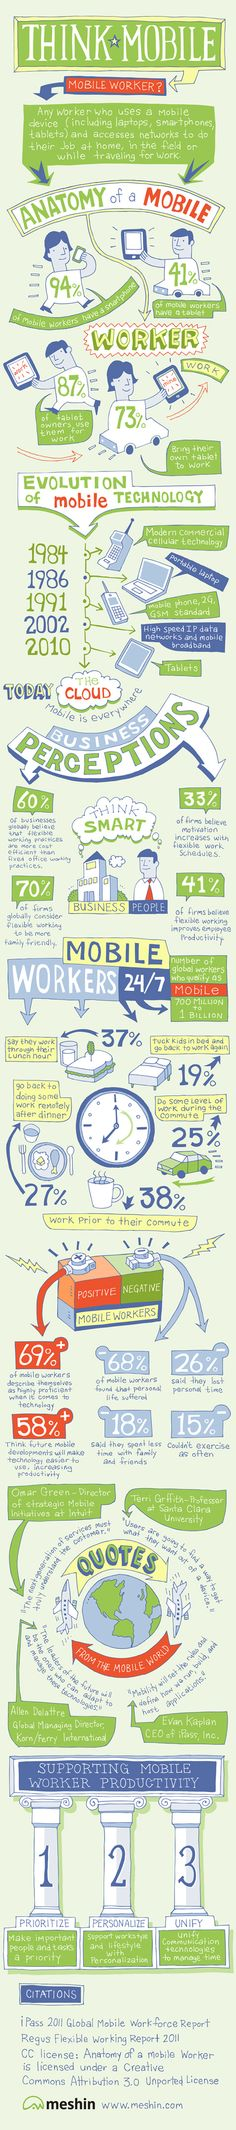 Think Mobile - The Mobile Worker (~global/career info graphics~)